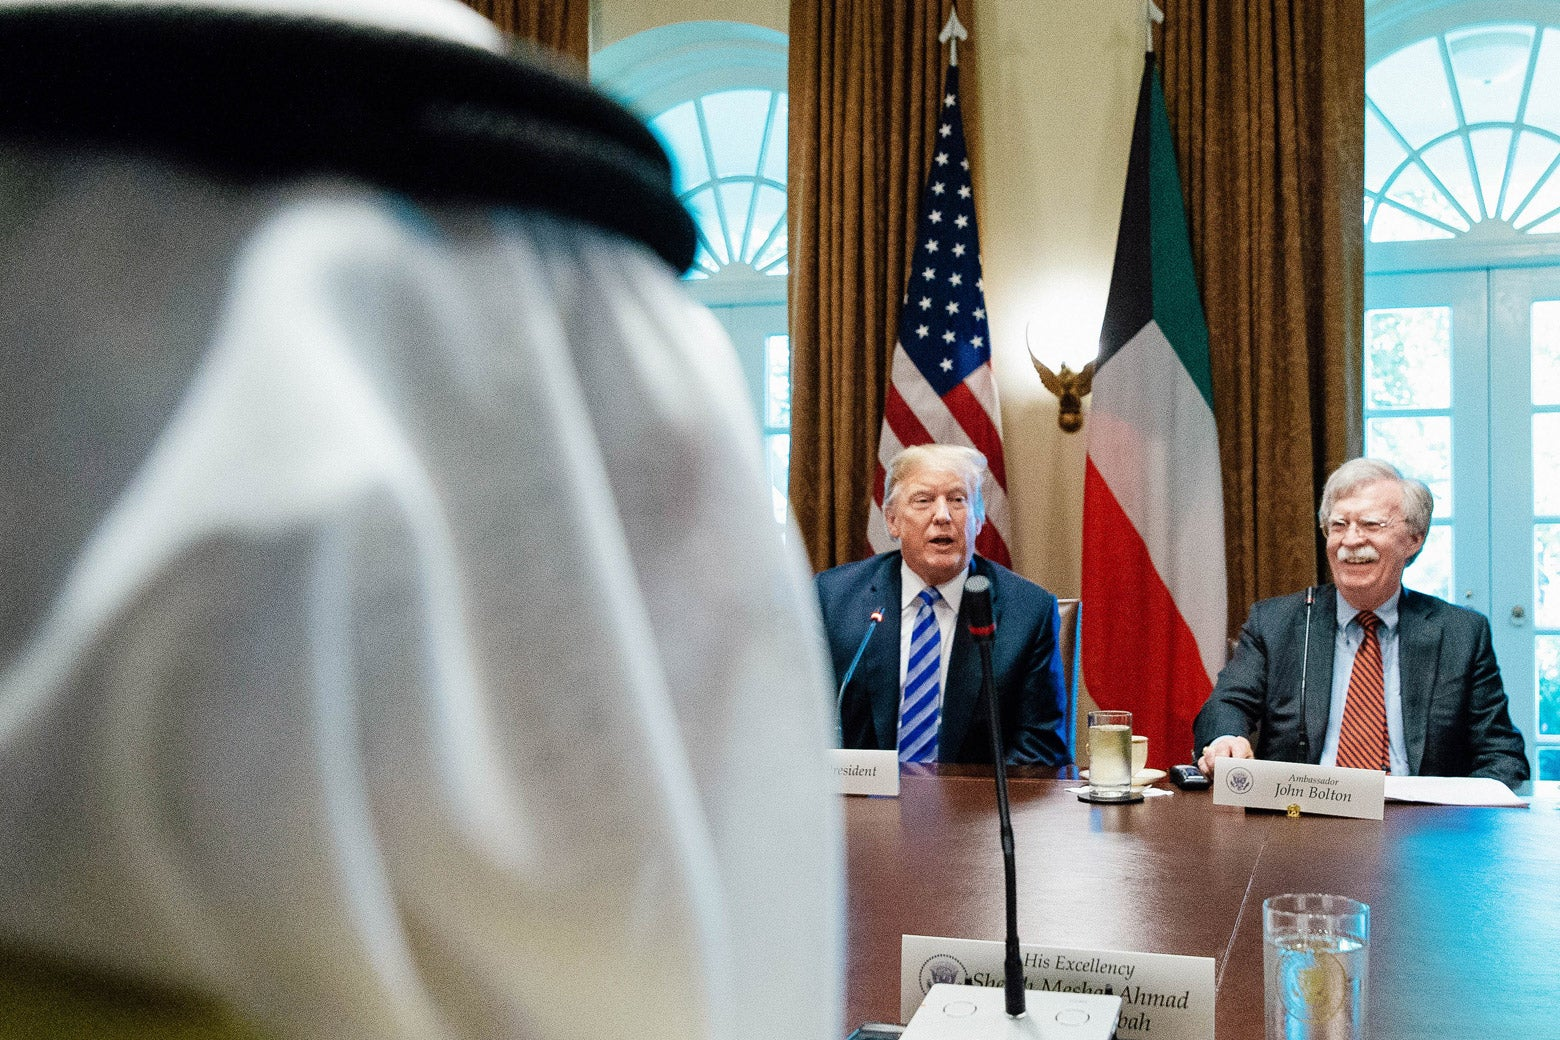 President Donald Trump and National Security Adviser John Bolton sit across the table from the Emir of Kuwait Jaber Al-Ahmad Al-Sabah.